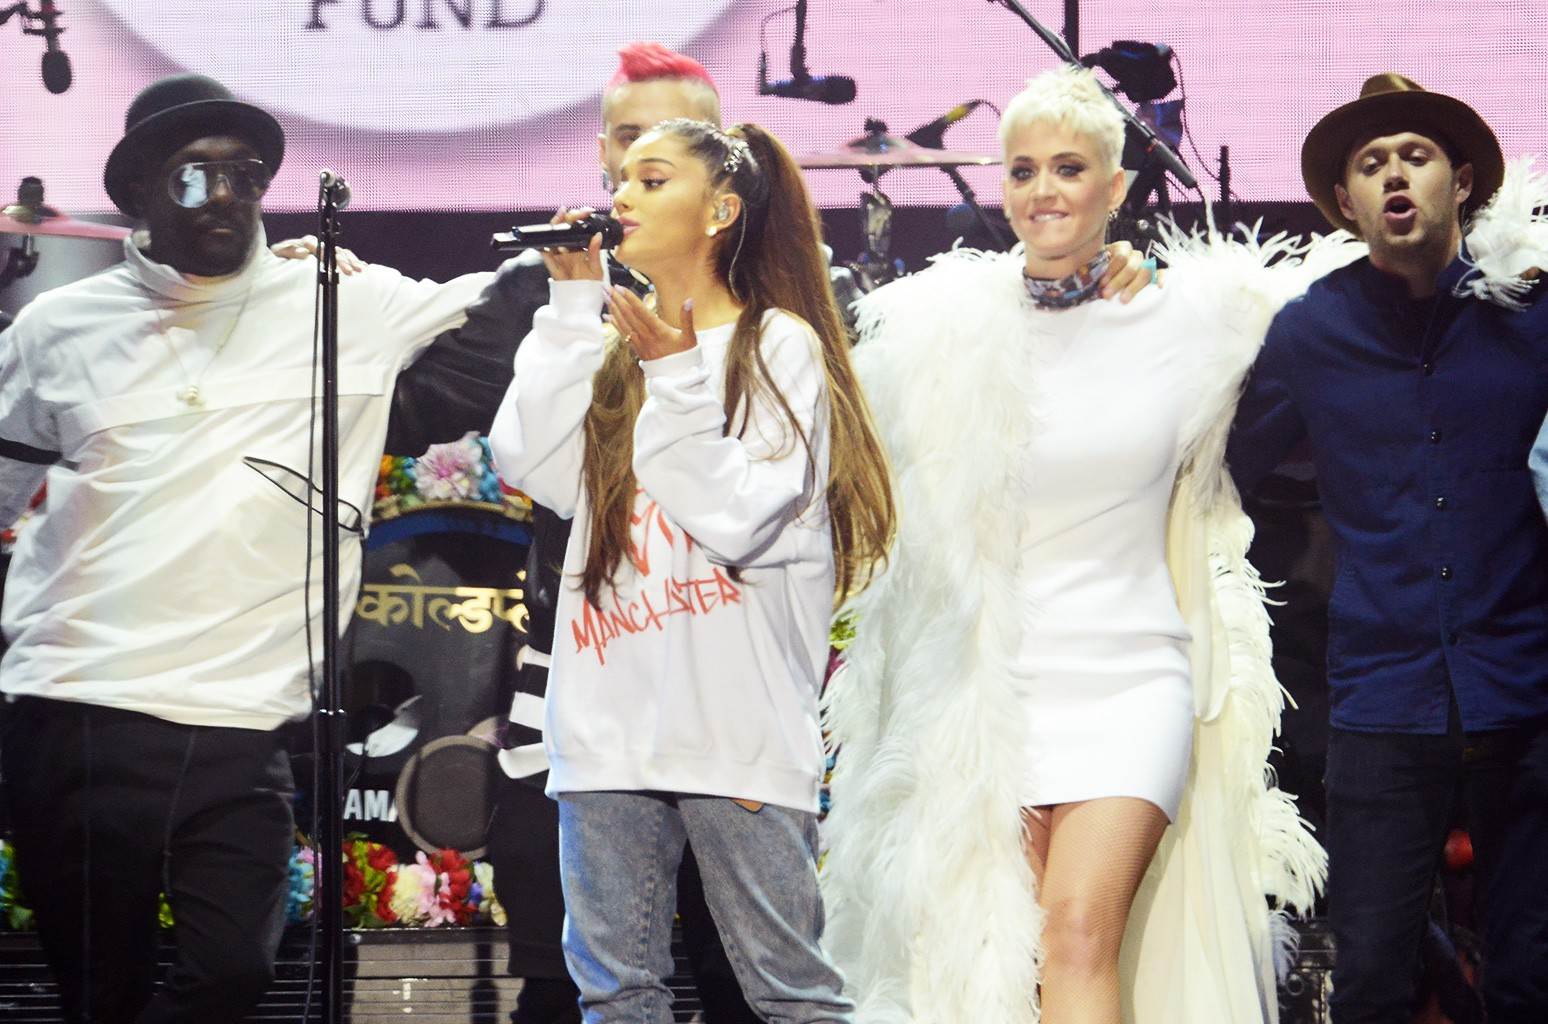 will.i.am, Taboo, Ariana Grande, Katy Perry, Niall Horan, Miley Cyrus and Imogen Heap on stage on June 4, 2017 in Manchester, England.